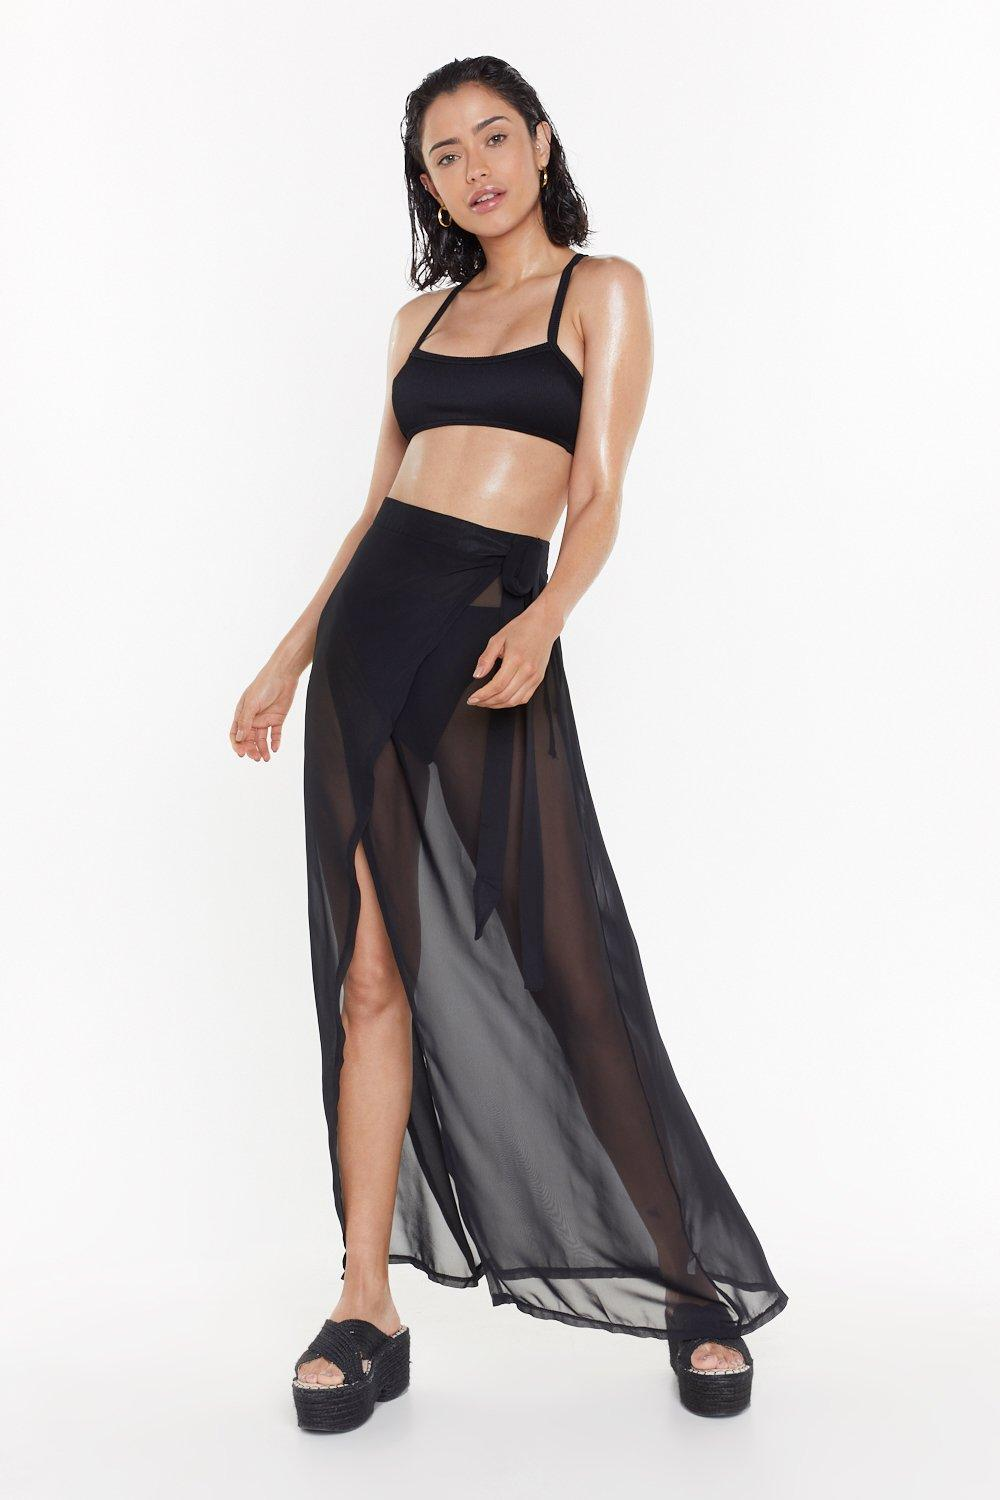 b5cc496b98967 We'll Sea About That Chiffon Cover-Up Skirt | Shop Clothes at Nasty Gal!